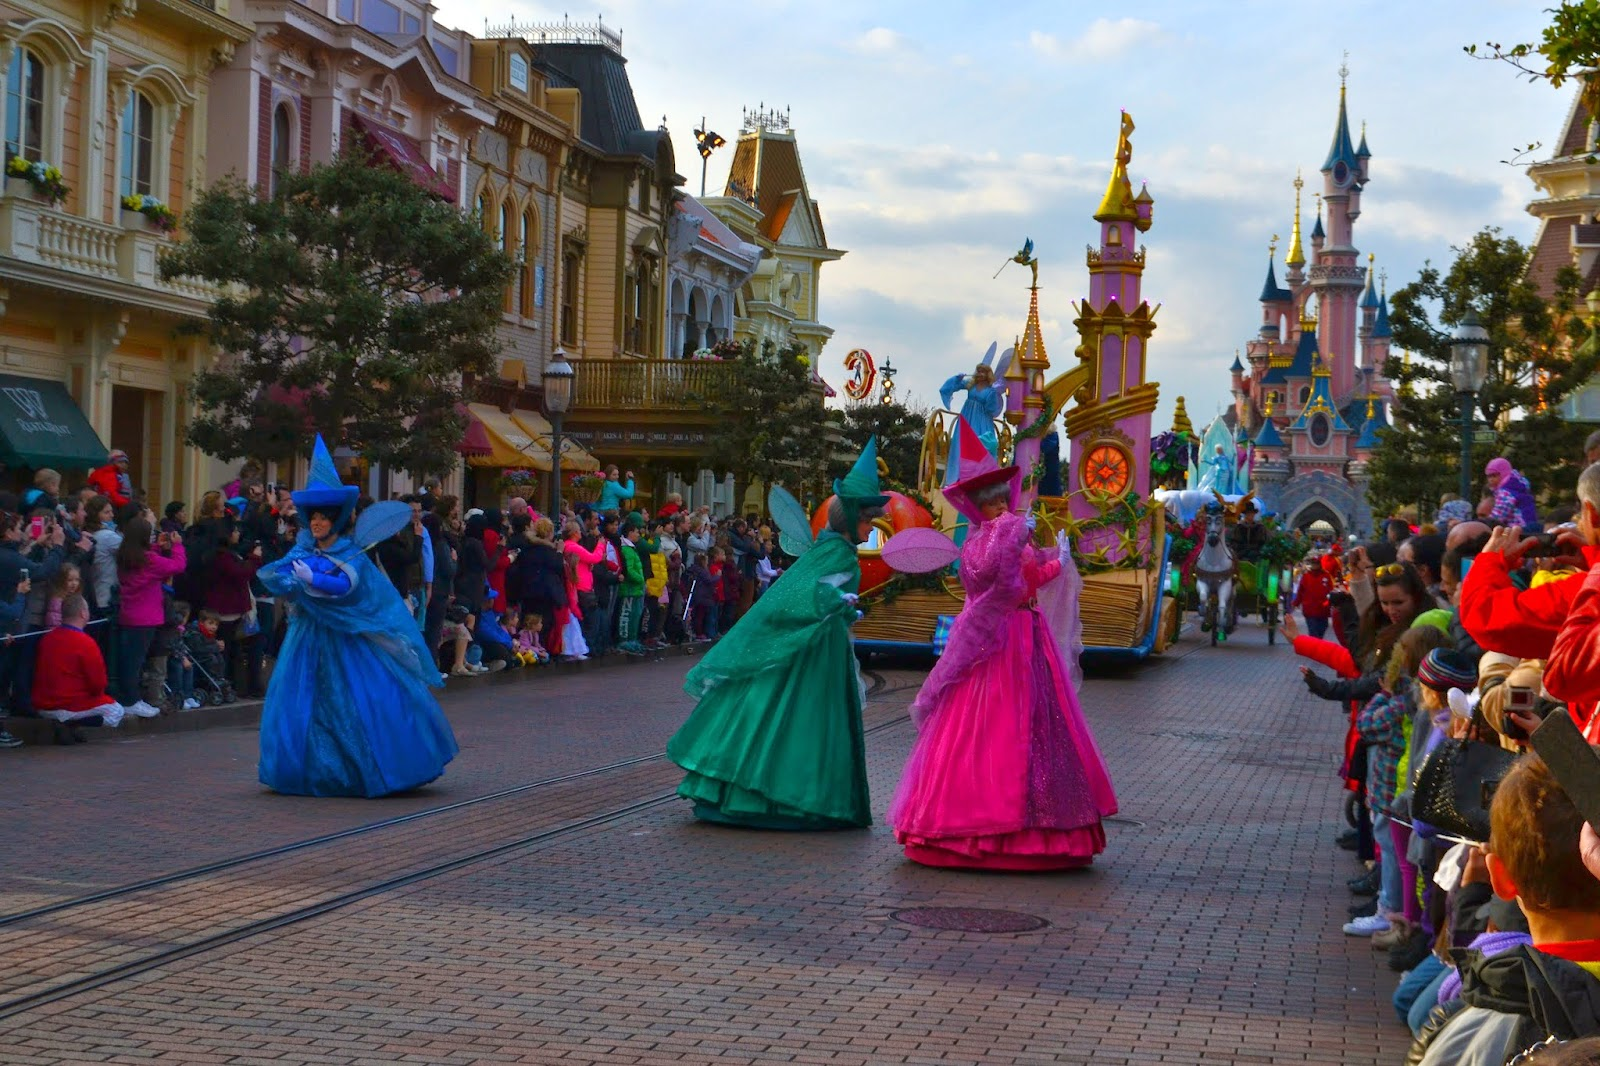 the disneyland parade. Flora Fauna and Merryweather can be seen walking in front of th sleeping beauty float